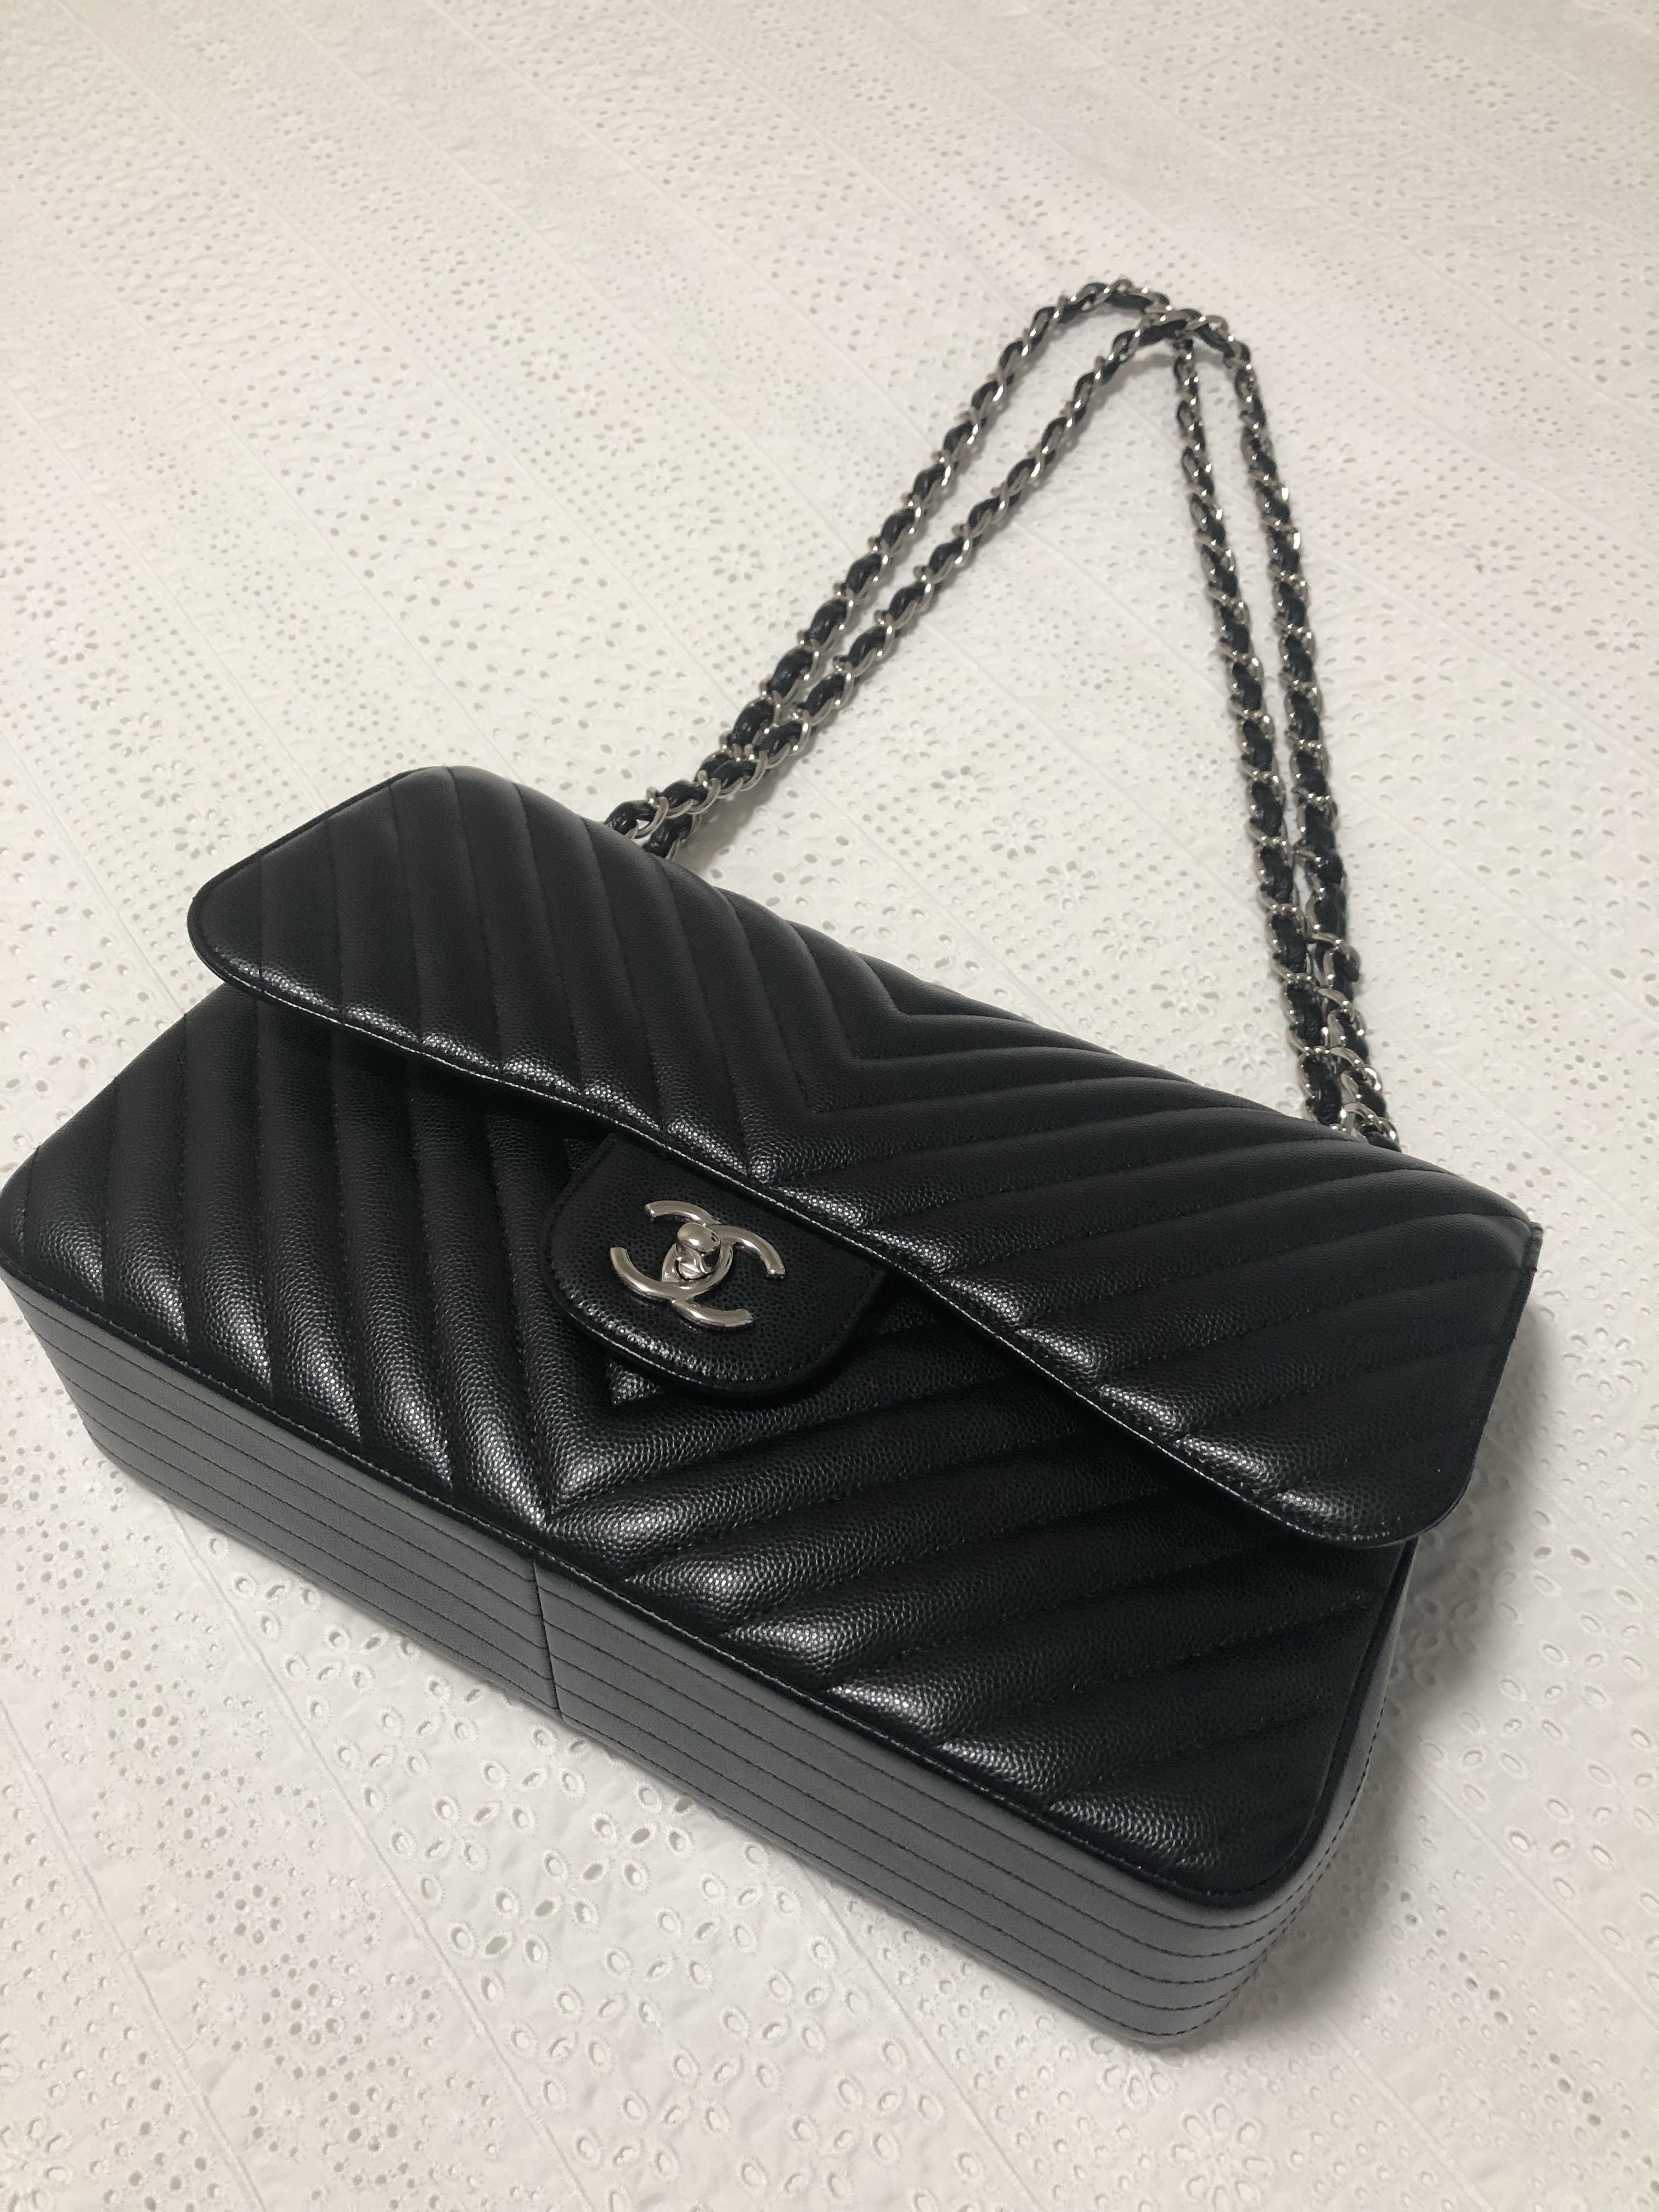 8ffb756f16c024 #Caroupay Chanel Large Classic Flap Bag, Luxury, Bags & Wallets, Handbags  on Carousell